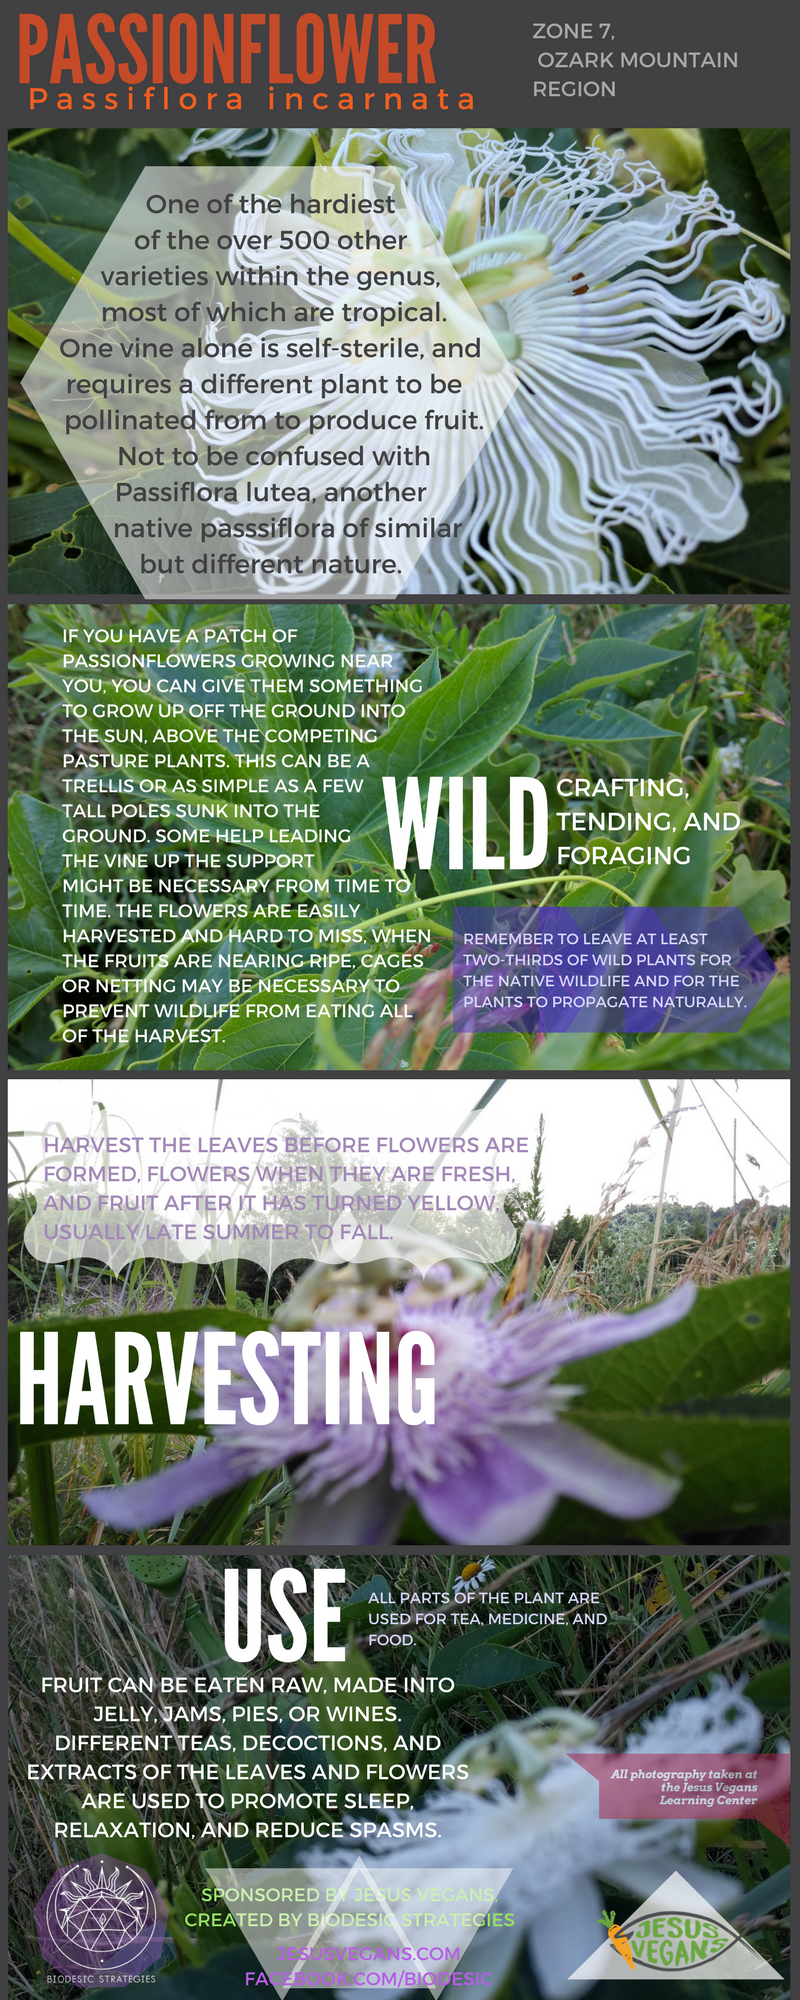 Passionflower_(1).png